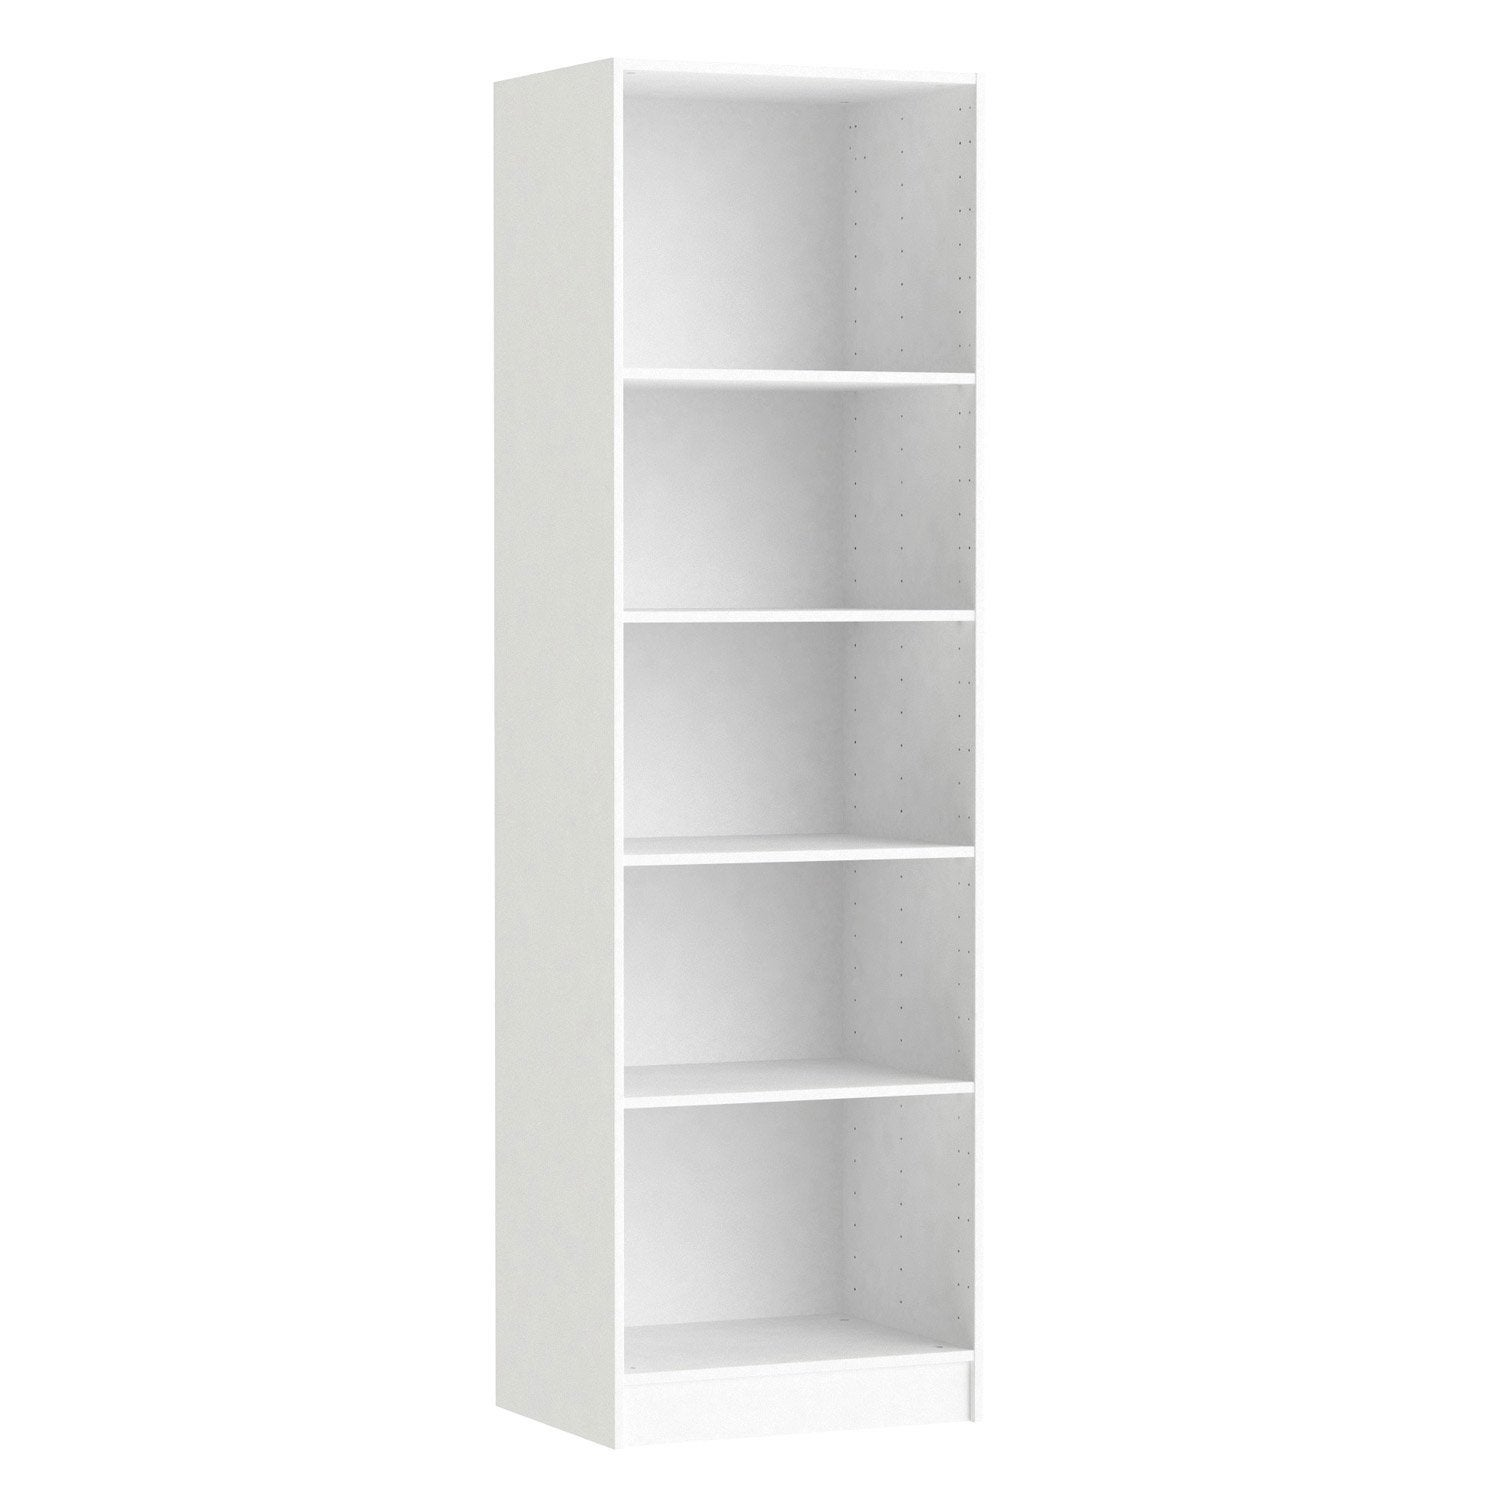 Caisson spaceo home 200 x 60 x 45 cm blanc leroy merlin for Bureau 60 cm de largeur